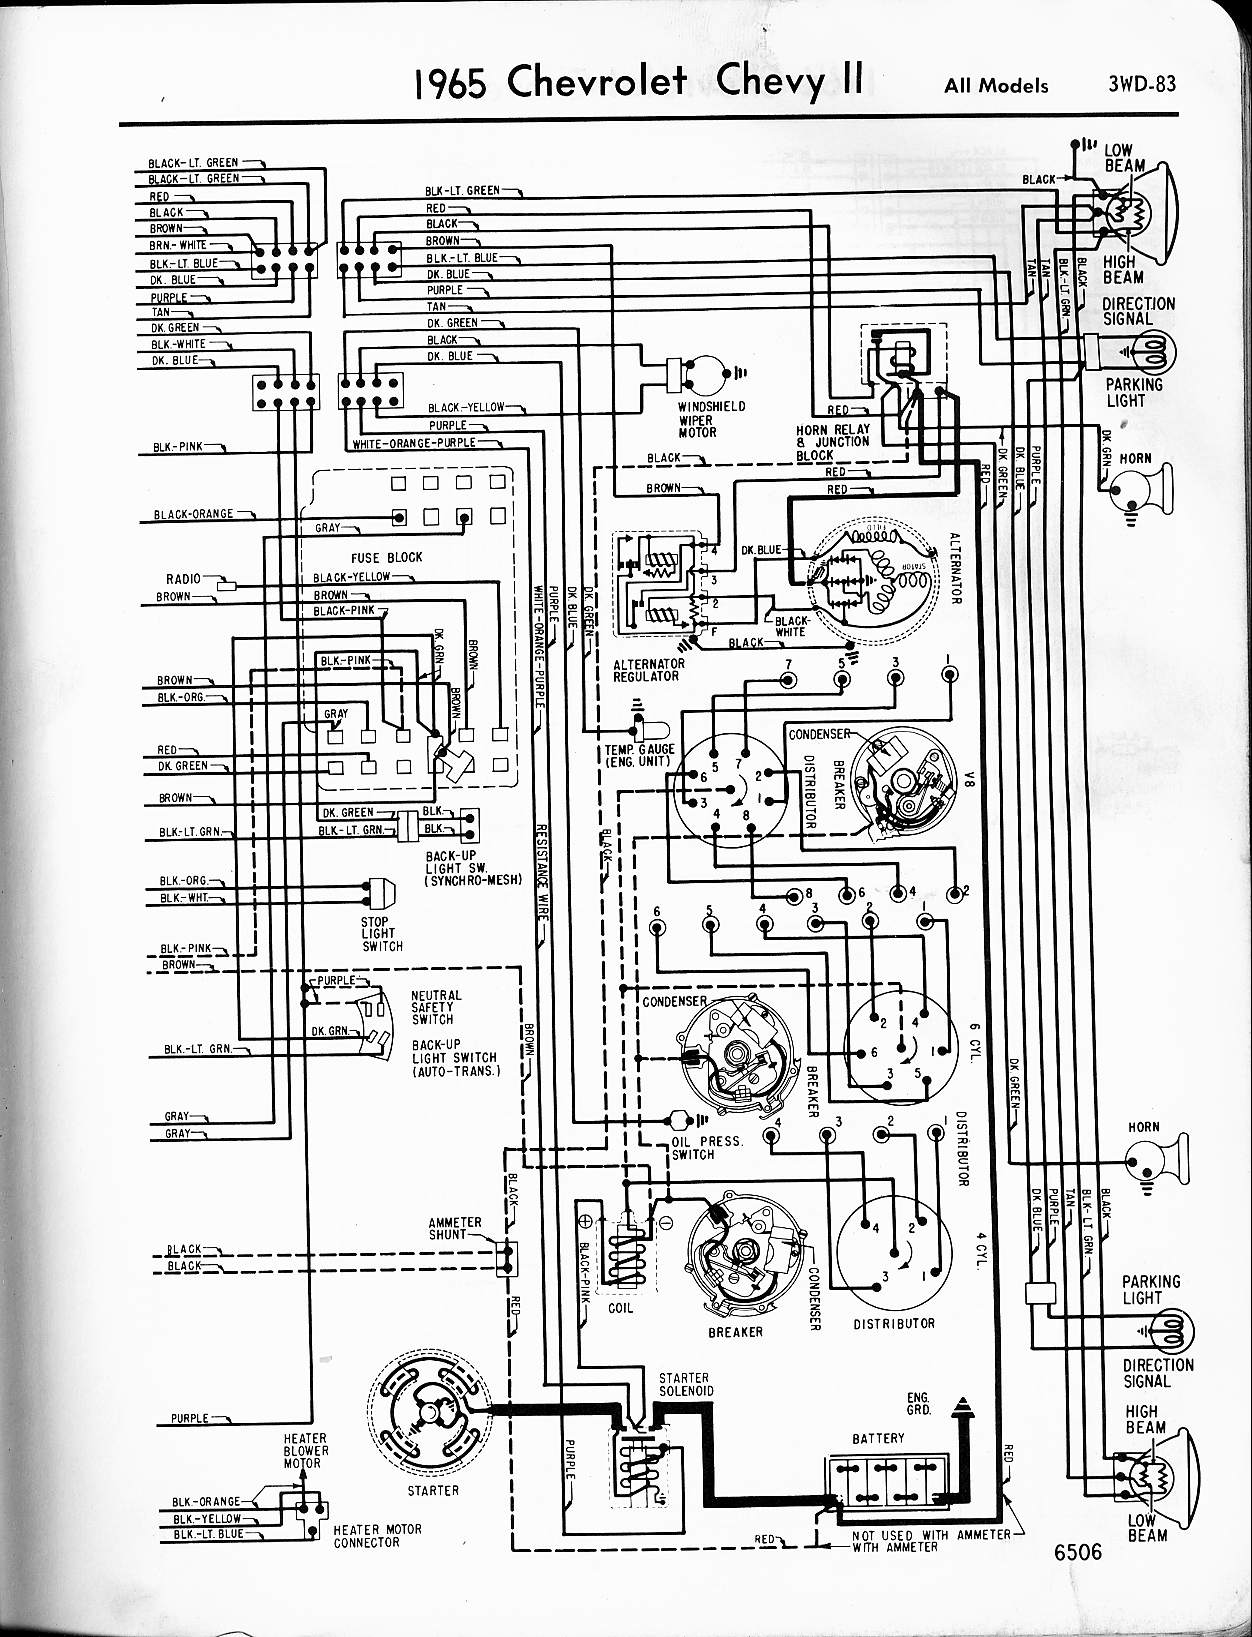 1970 buick skylark wiring diagram electrical work wiring diagram u2022 rh aglabs co